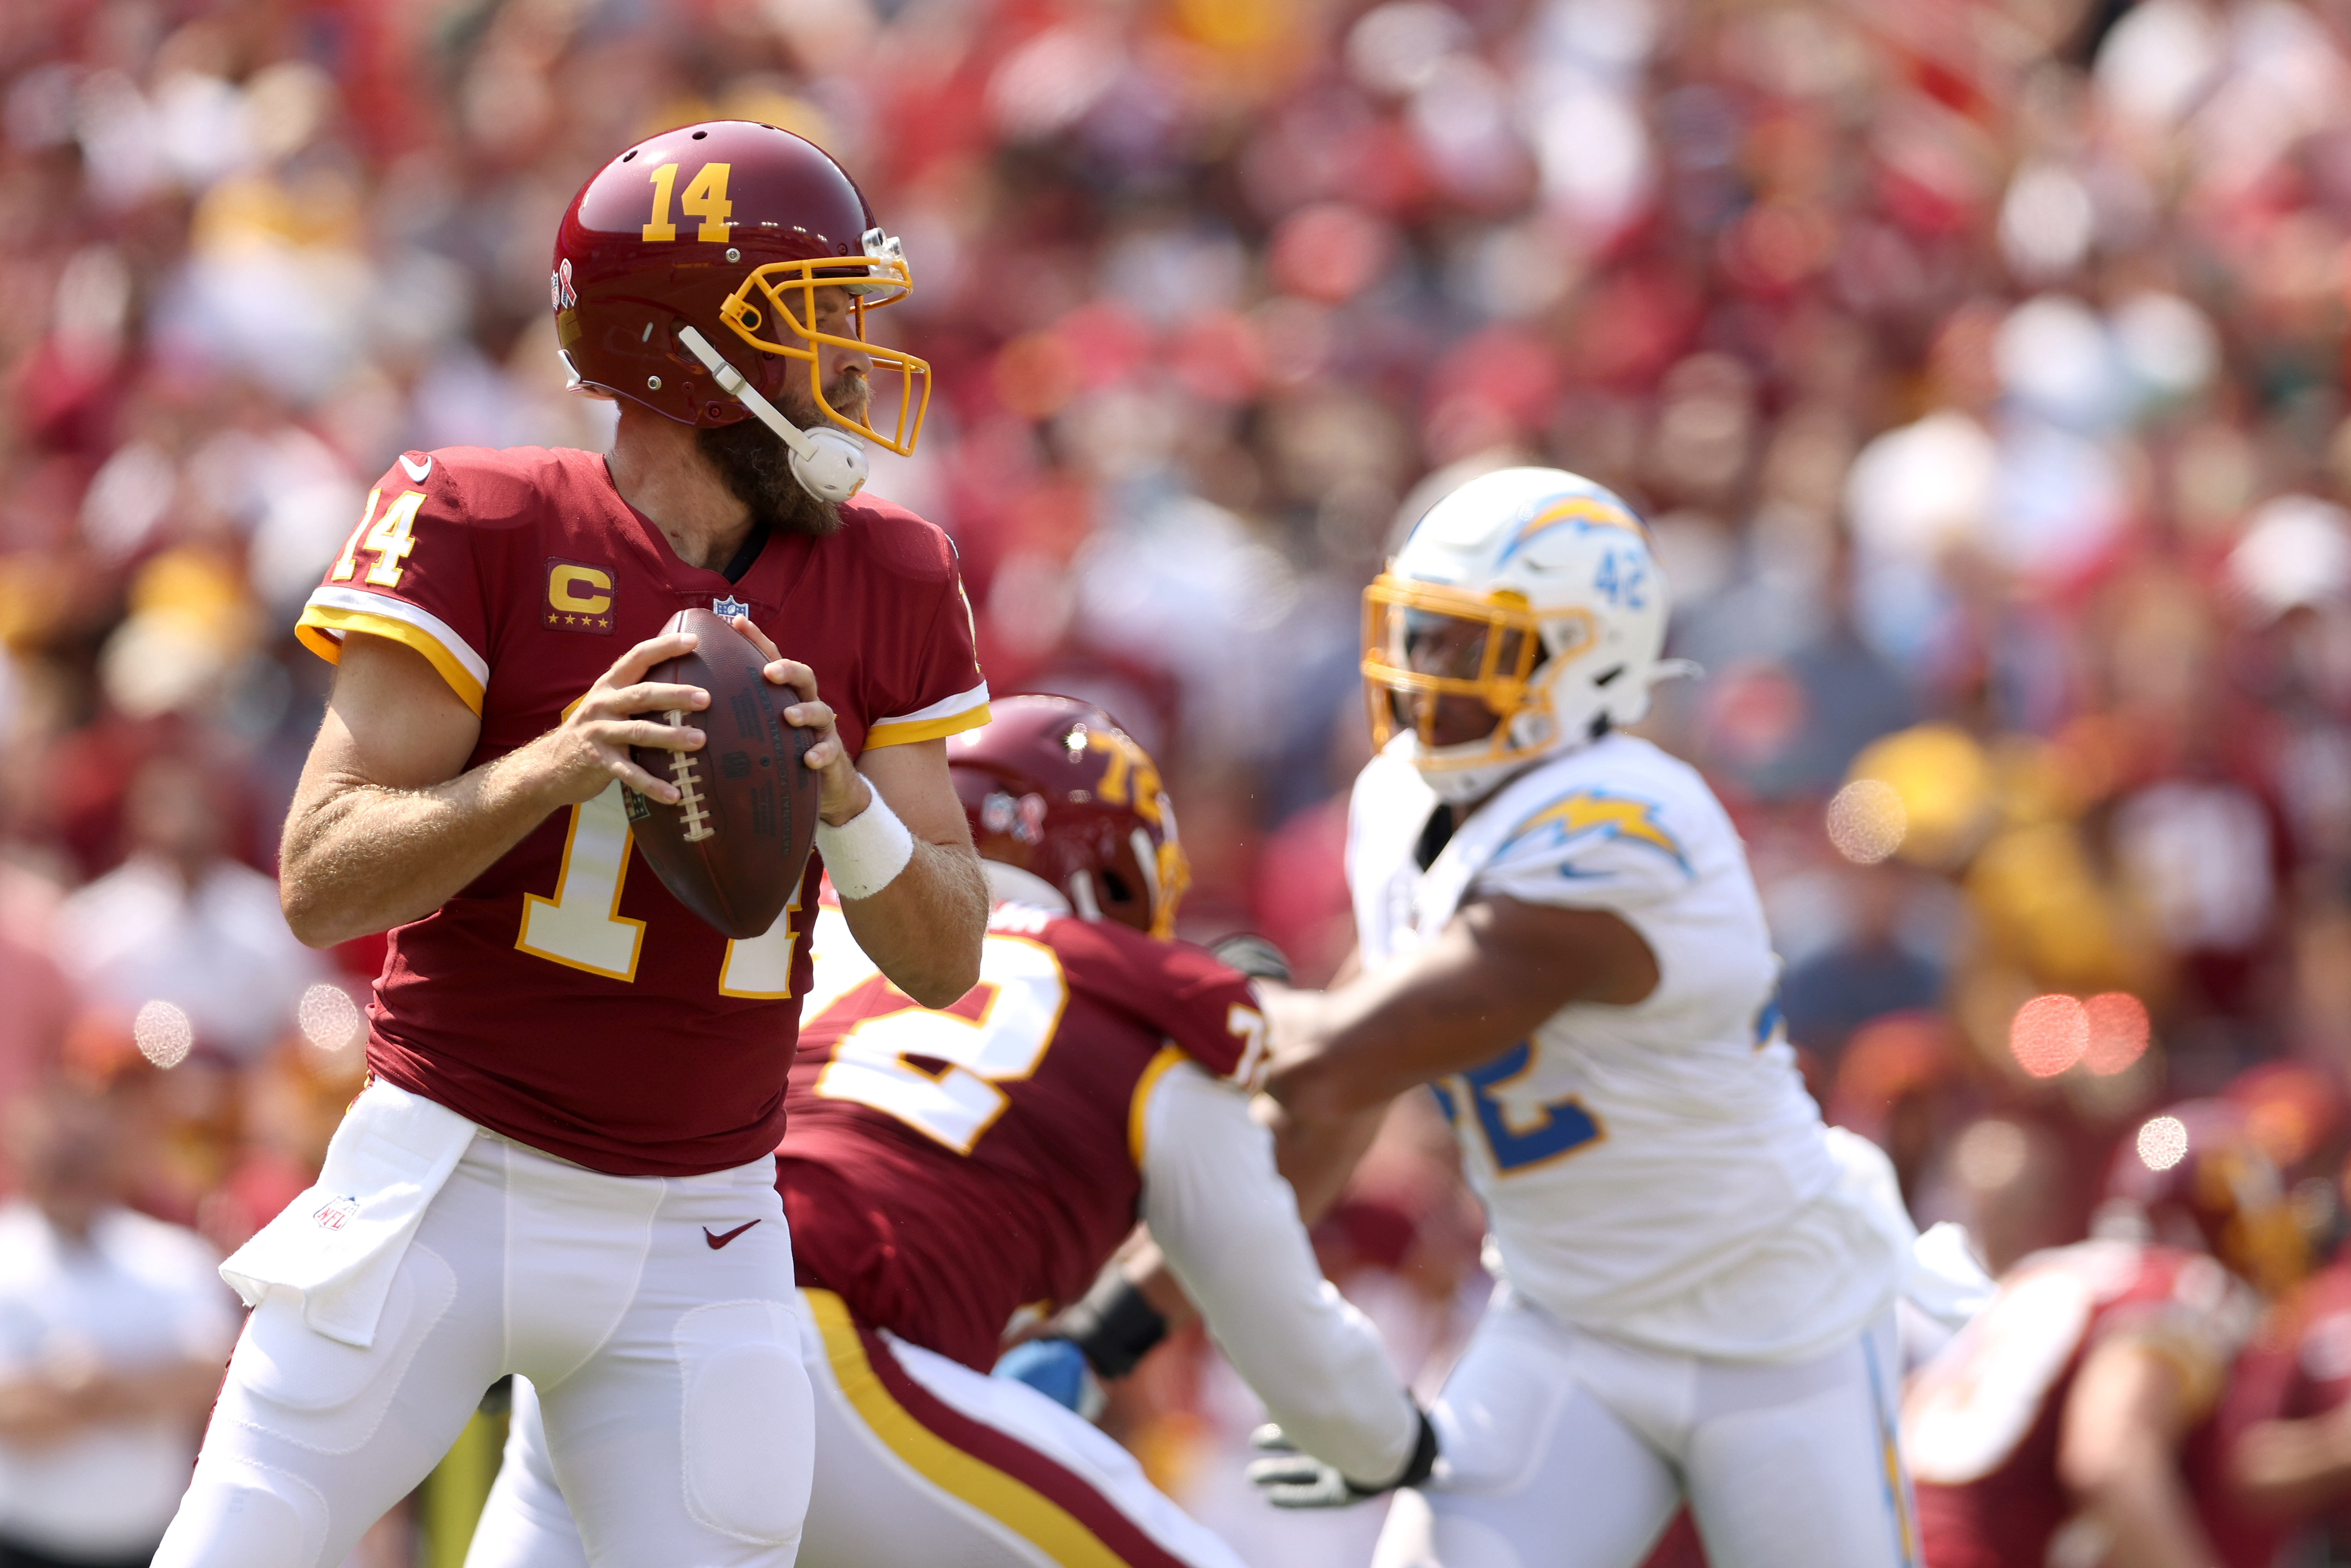 Quarterback Ryan Fitzpatrick #14 of the Washington Football Team throws a pass against the Los Angeles Chargers at FedExField on September 12, 2021 in Landover, Maryland.